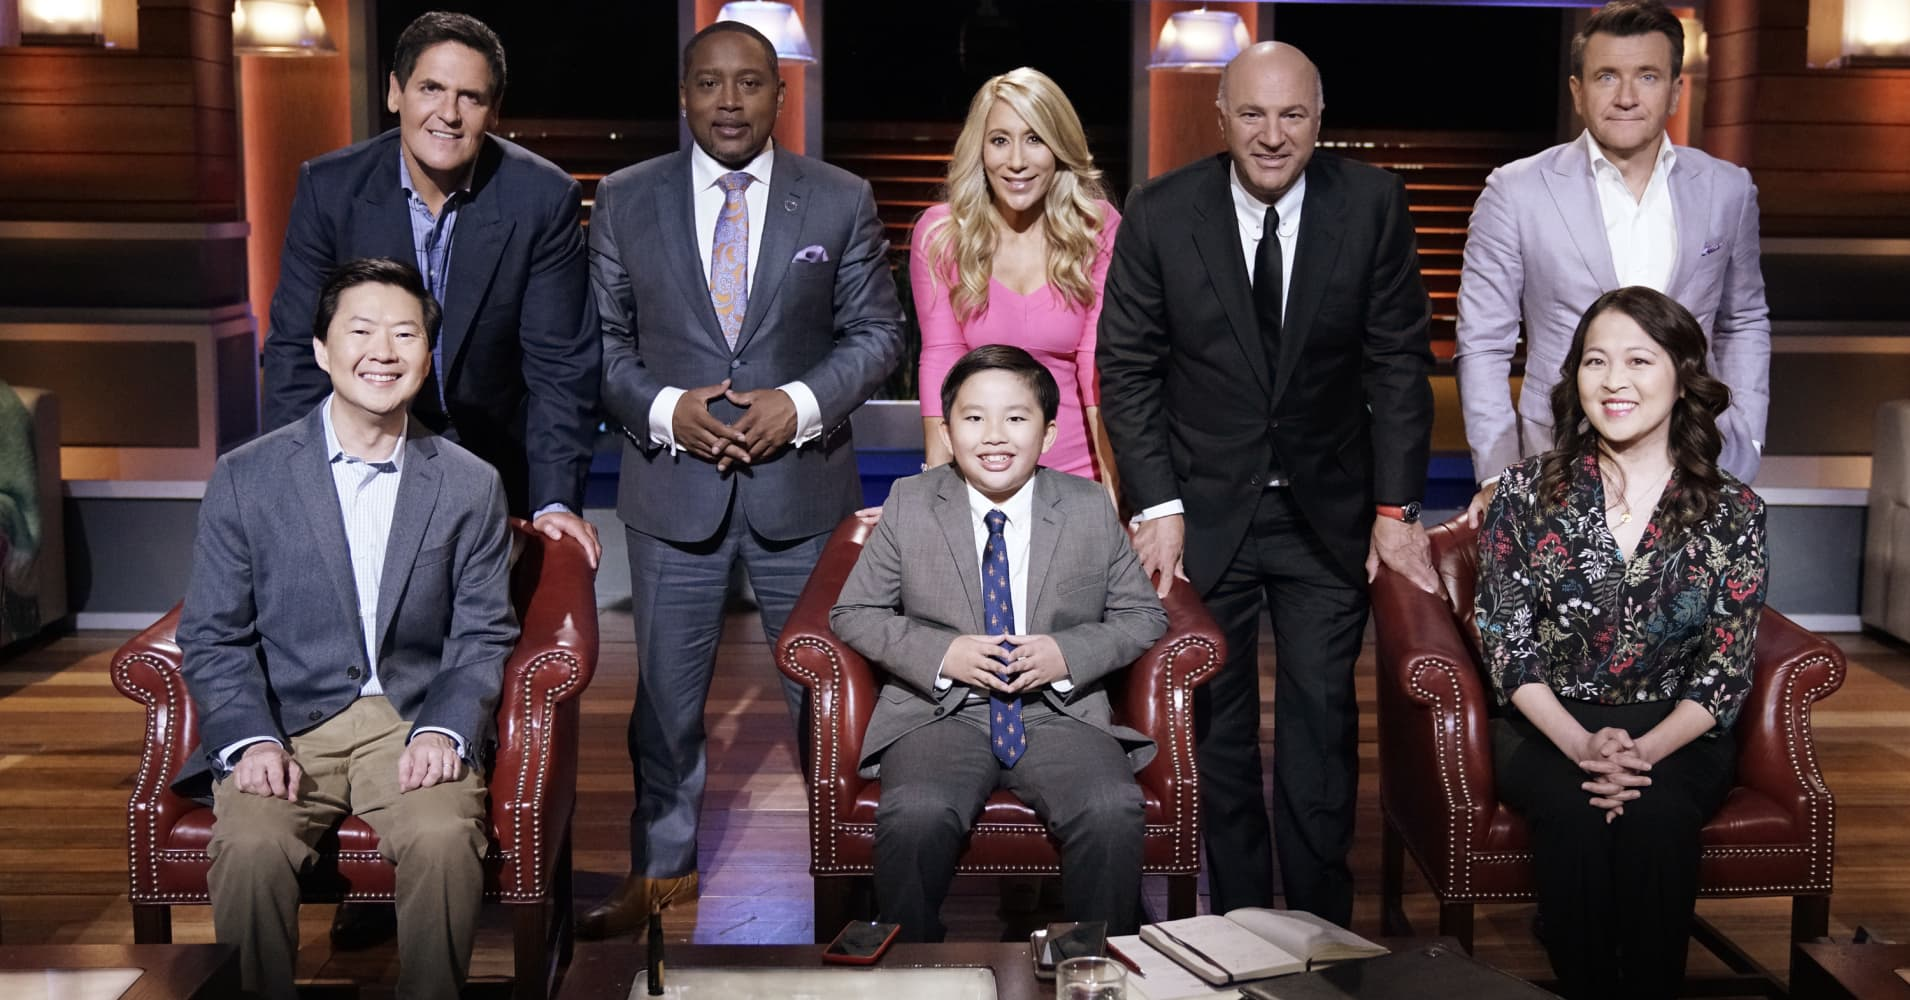 DR. KEN - 'Dave Goes on Shark Tank' - When Dave announces he's been invited to pitch his Hot Legs Duvet invention on 'Shark Tank,' Ken is excited. But then he gets nervous about throwing his son into the Tank when he realizes how tough the Sharks can be.